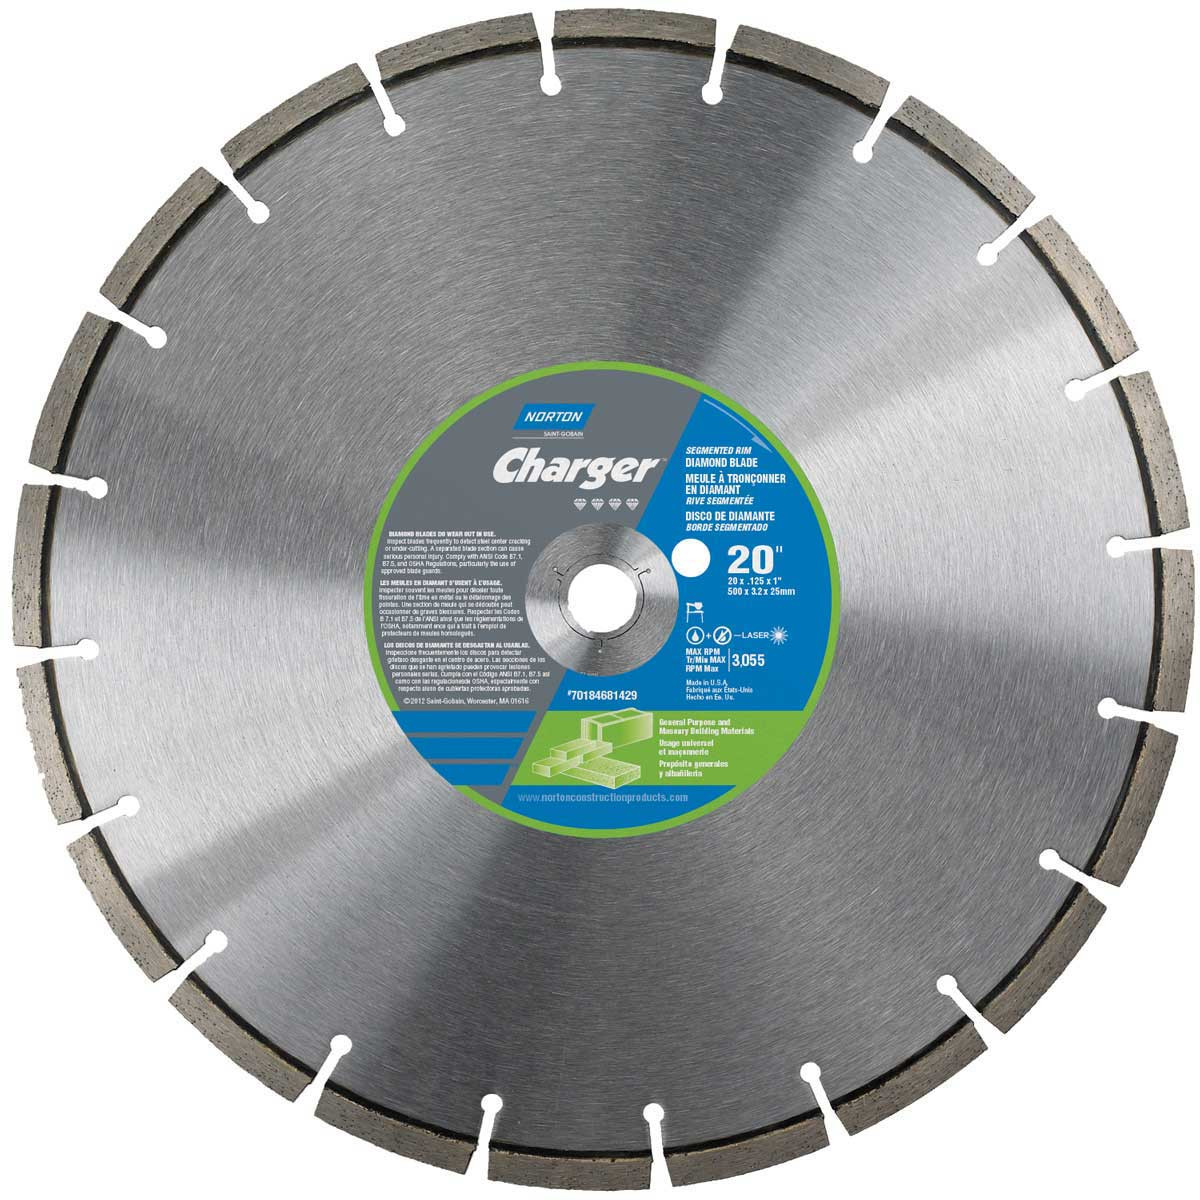 20 inch Norton Clipper Charger Masonry Saw Blade